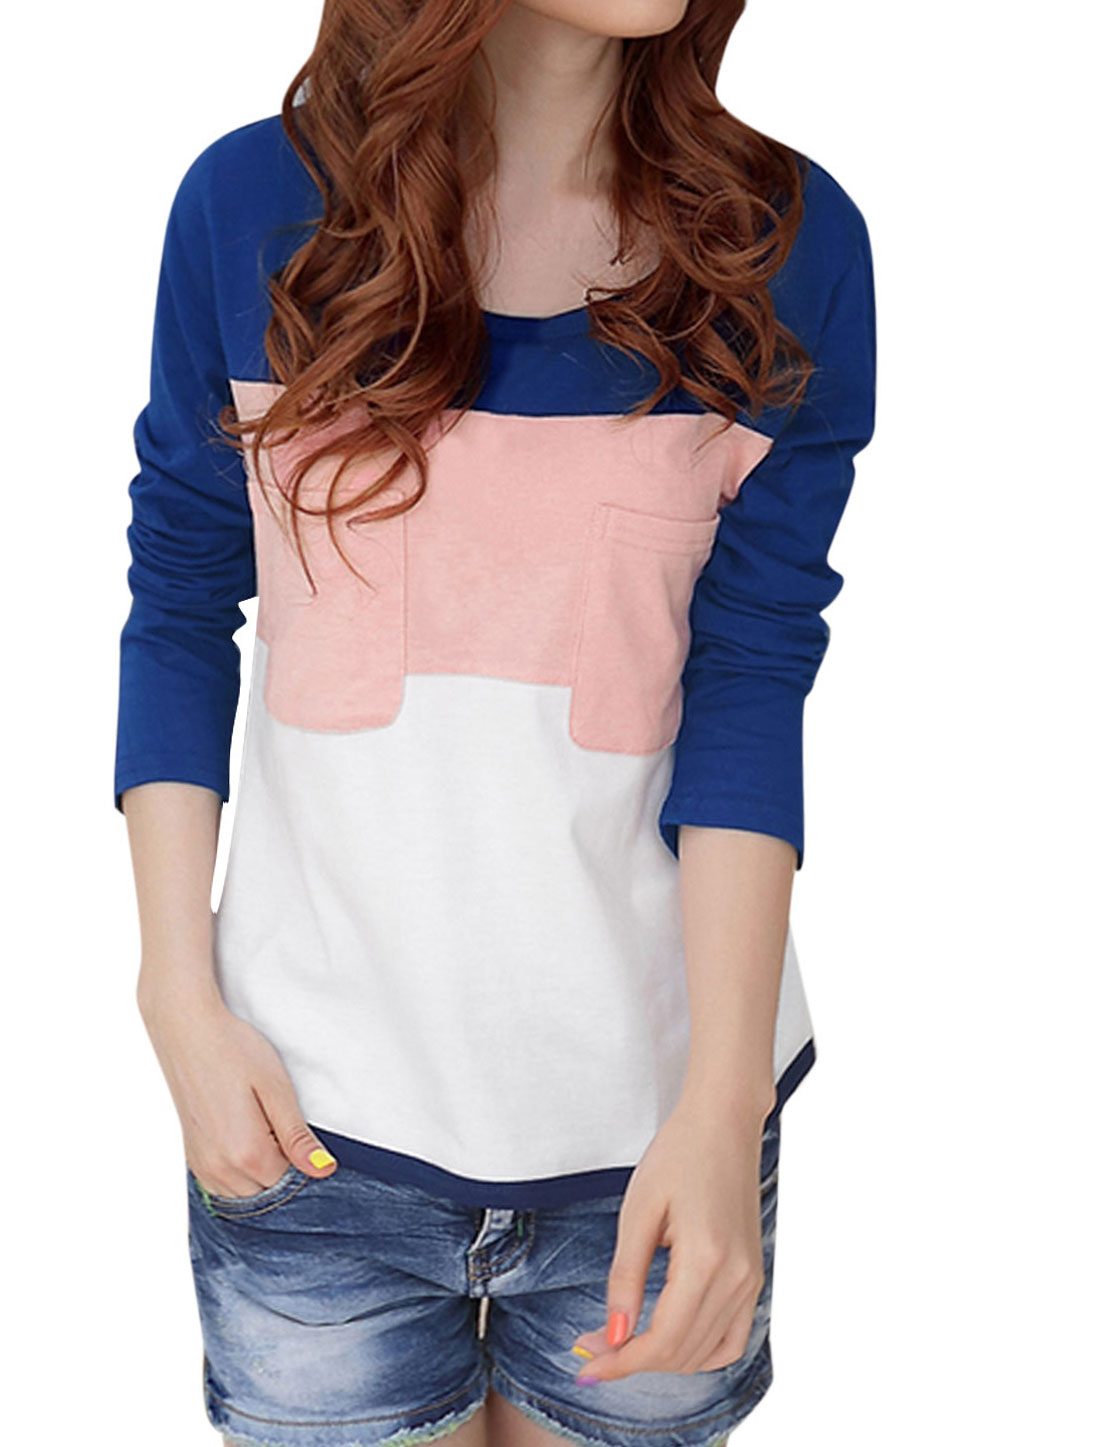 Ladies Round Neck Color Block Long Sleeve Tee Shirt Royal Blue XS